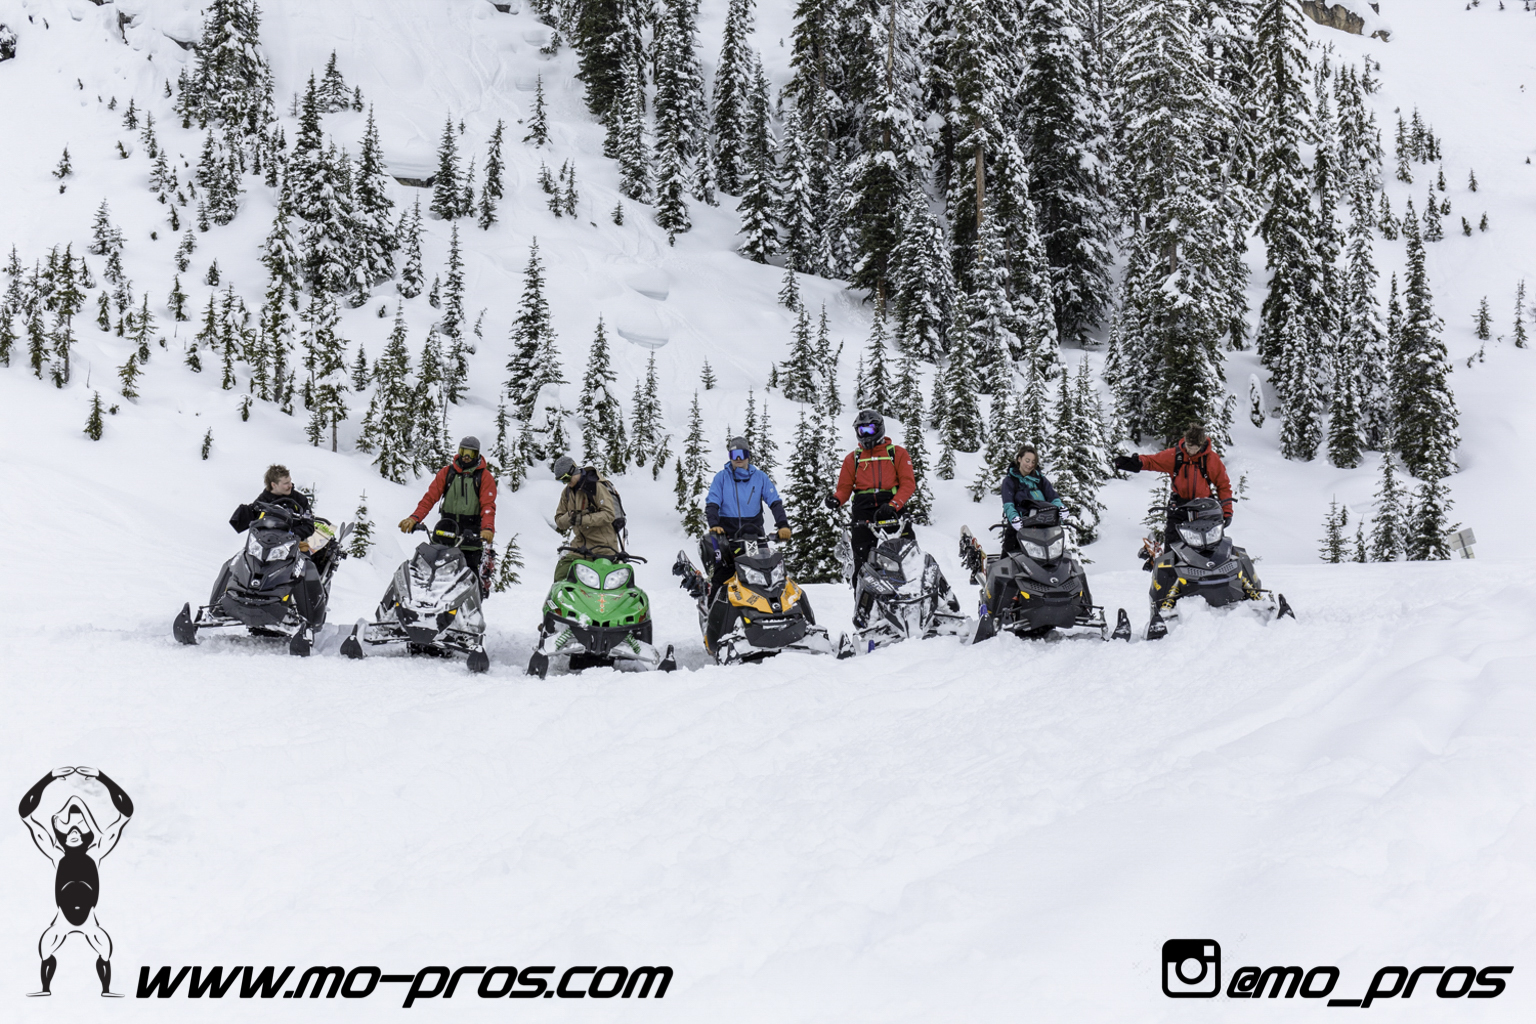 61_Backcountry _Backcountry United_CFR rack_Cheetah Factory Racing_gas Rack_Gear_Gun Rack_LinQ Snowboard Ski_Rack_Ski_Snowbike_snowboard_Snowboard rack_Snowboarding_Snowmobile_snowmobile bag_timbersl.jpg